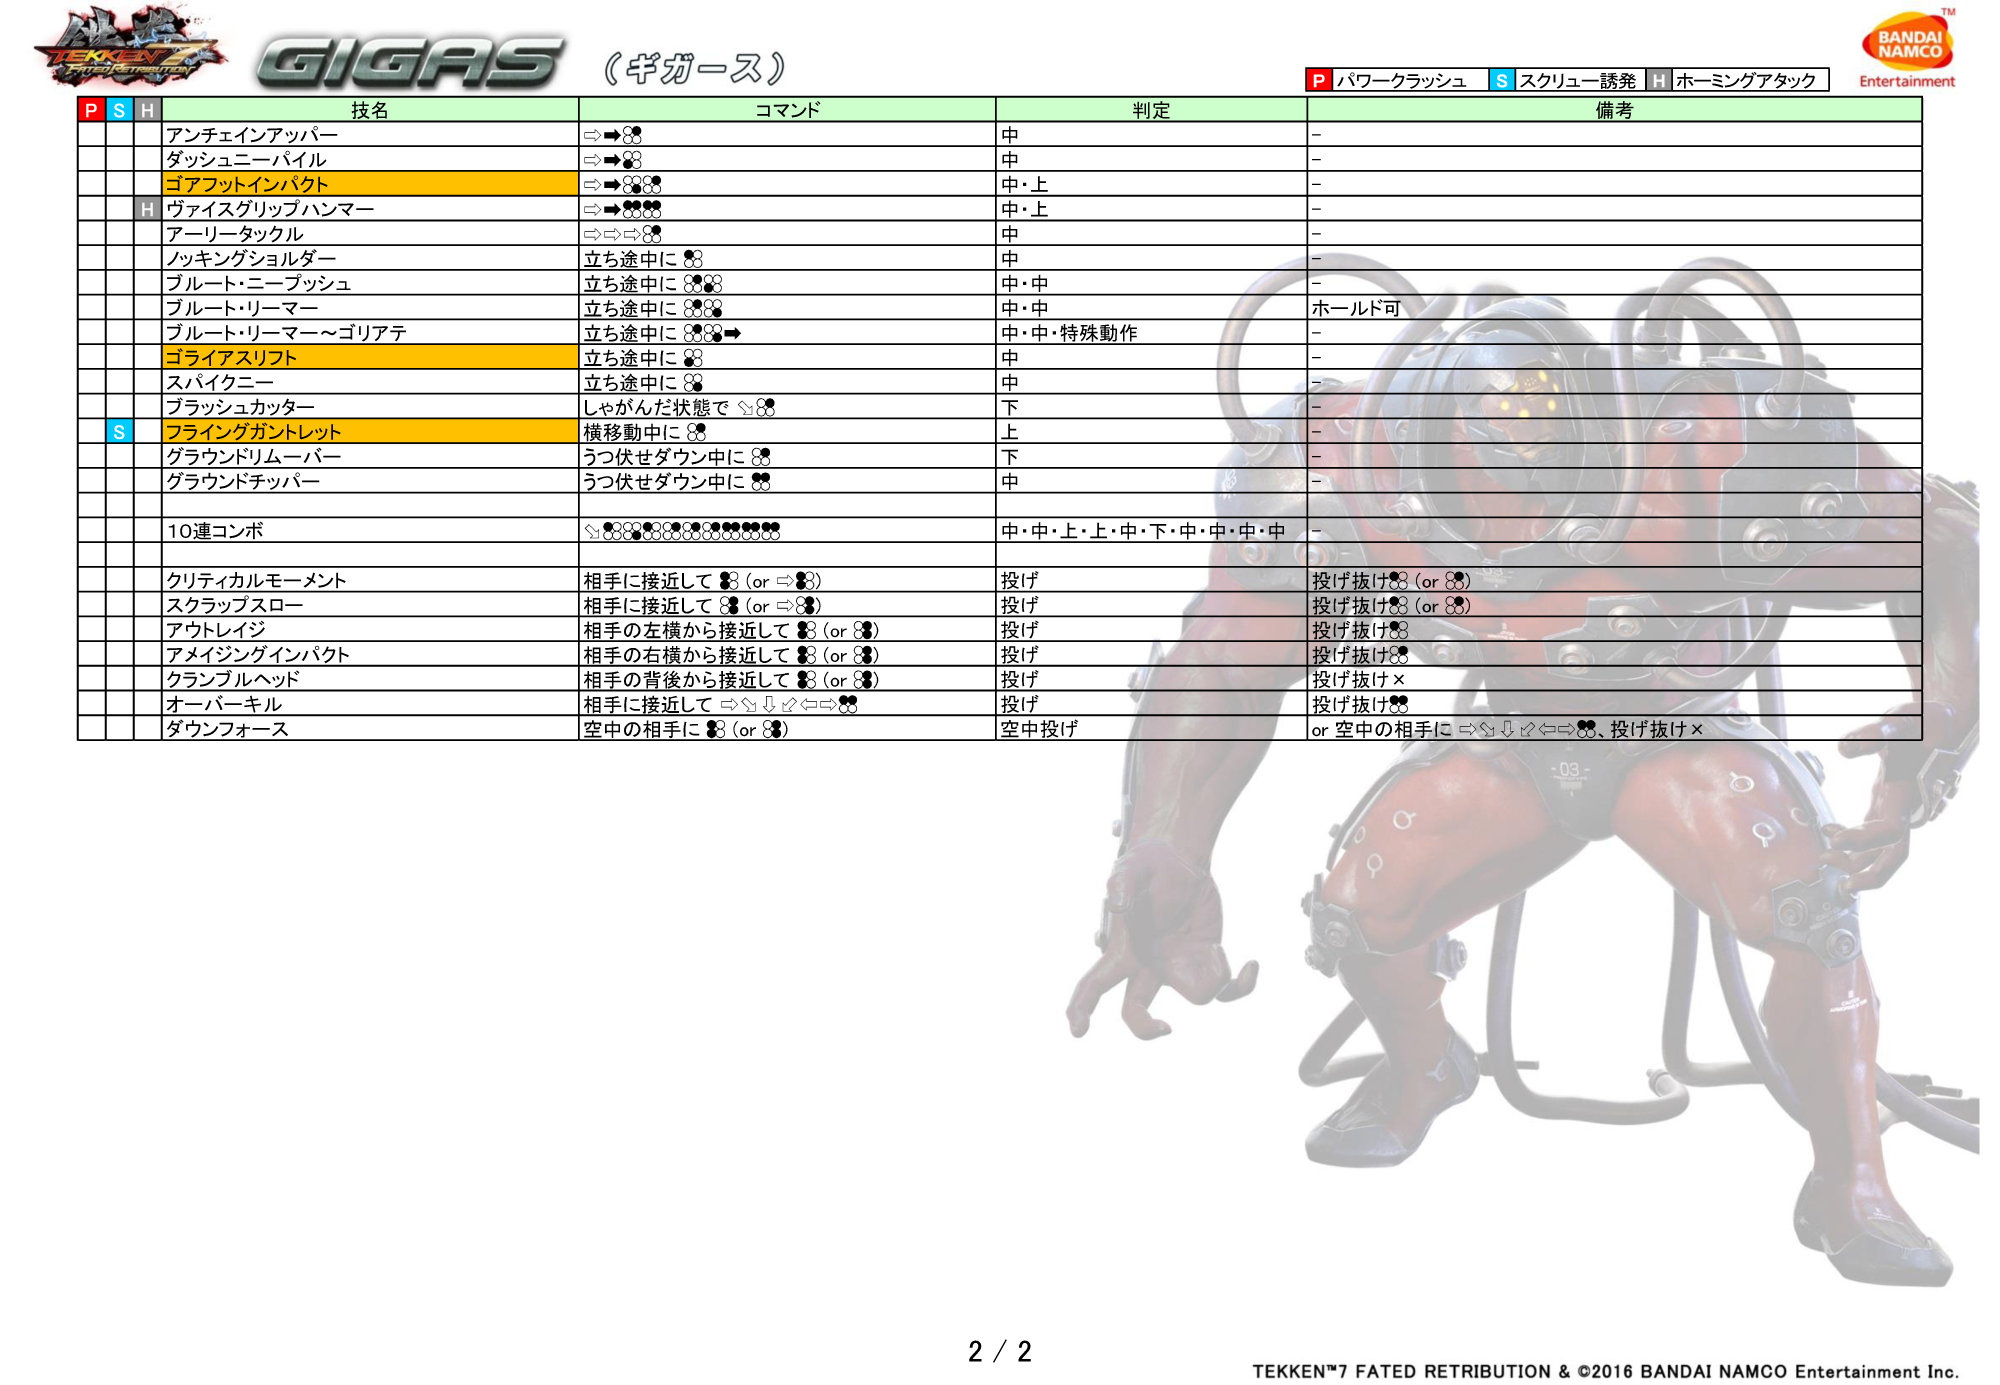 Gigas' moves Tekken 7 2 out of 2 image gallery